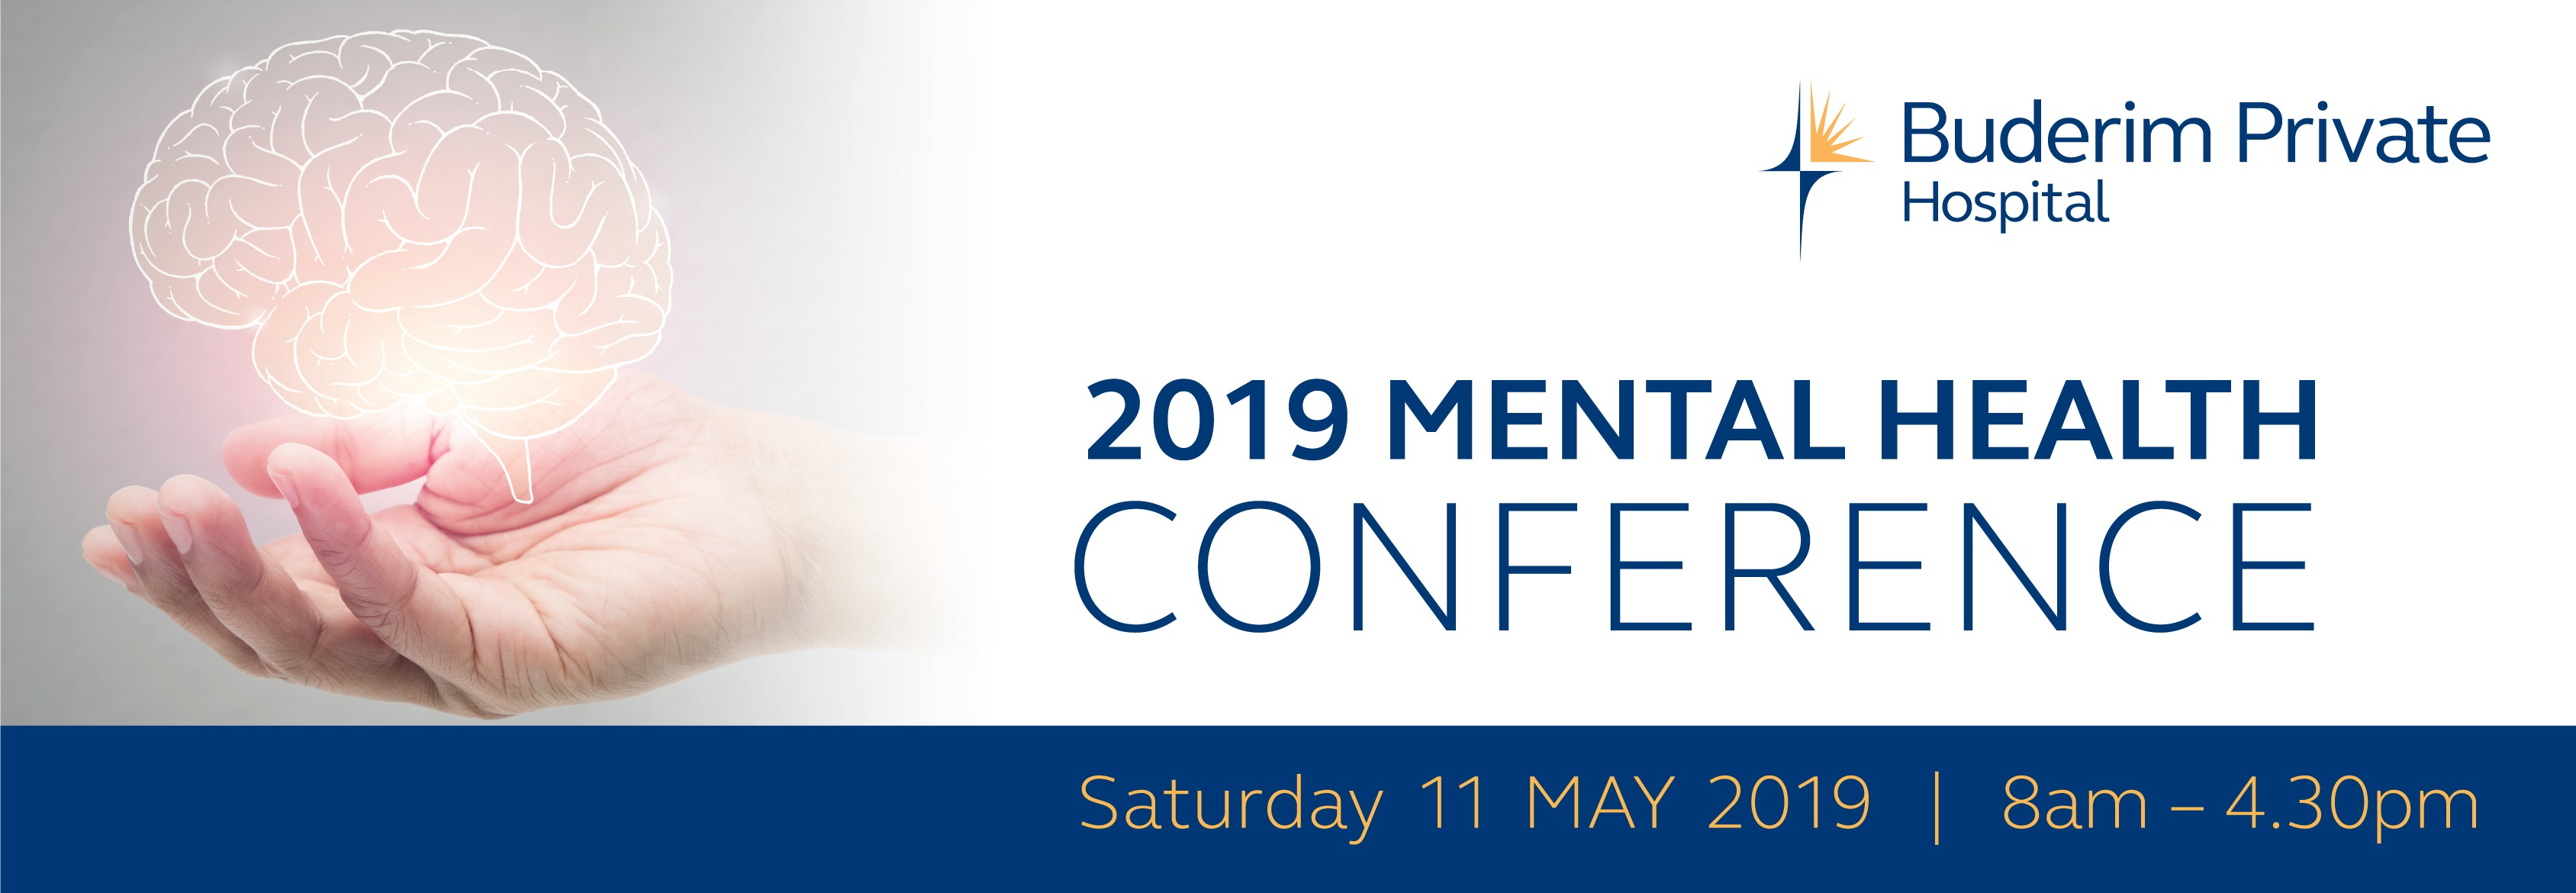 BPH-Mental-Health-Conference-web-banner-2019-F